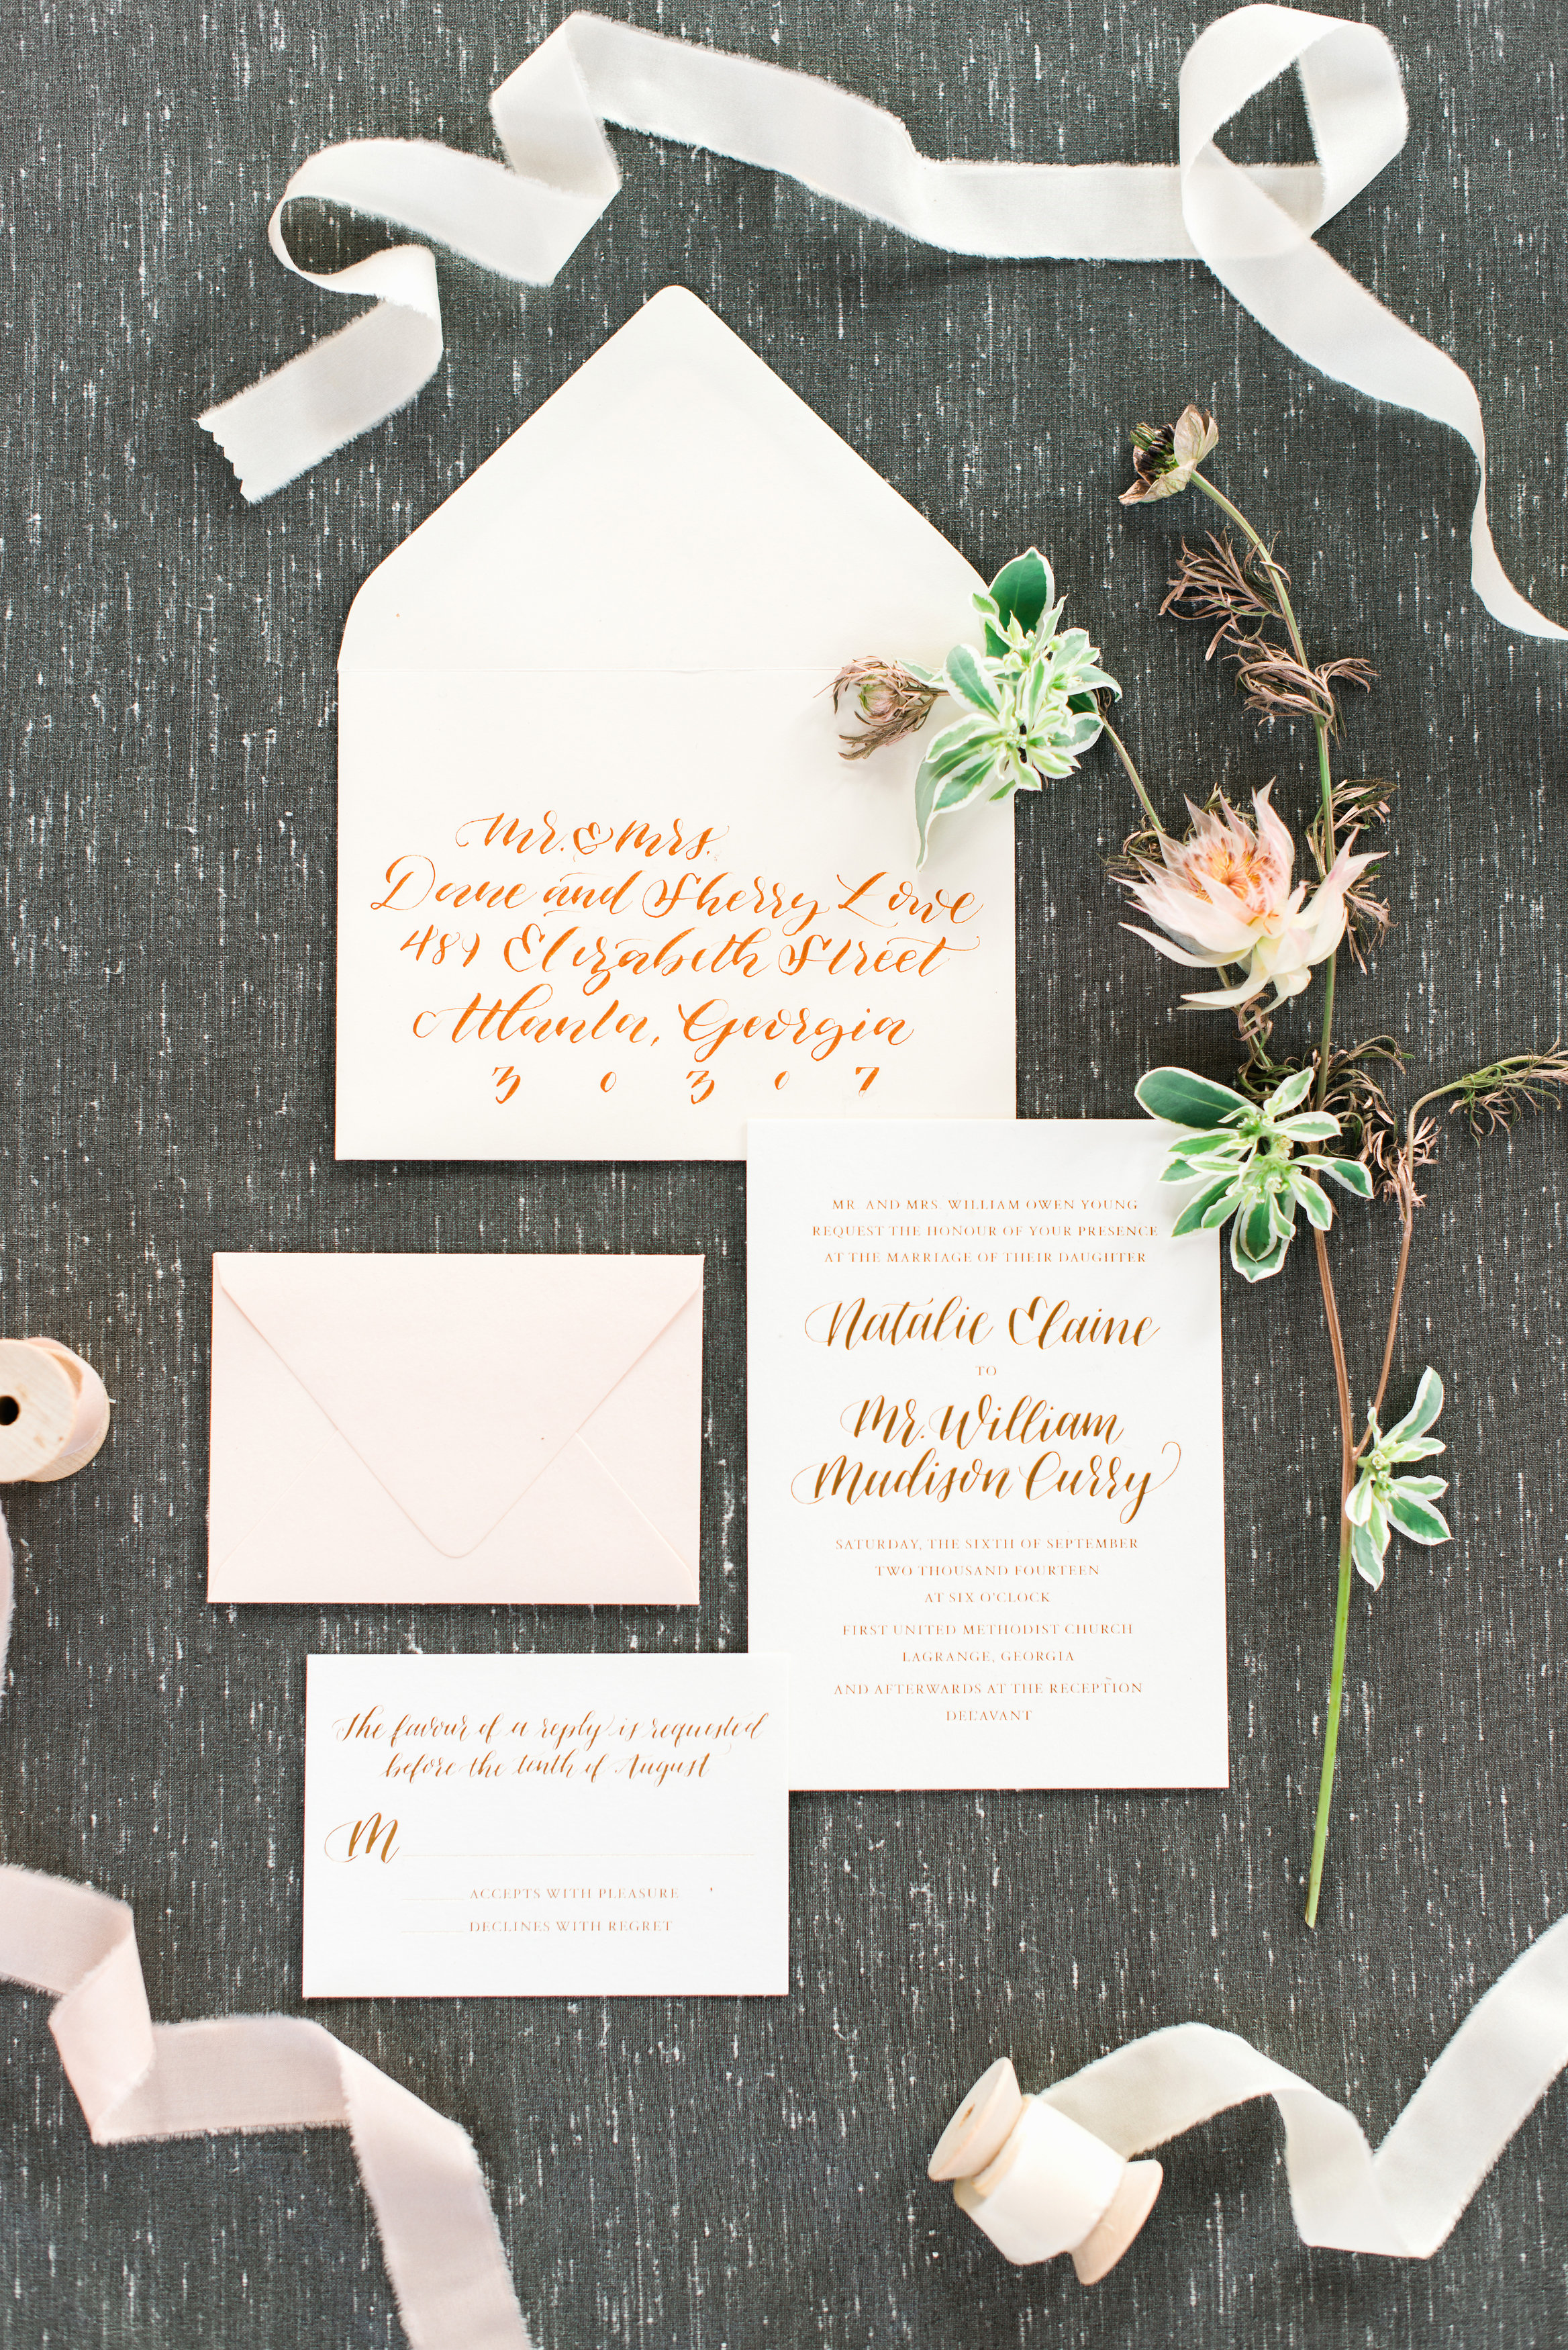 copper-blush-invitation-suite-rustic-white-molly-mckinley